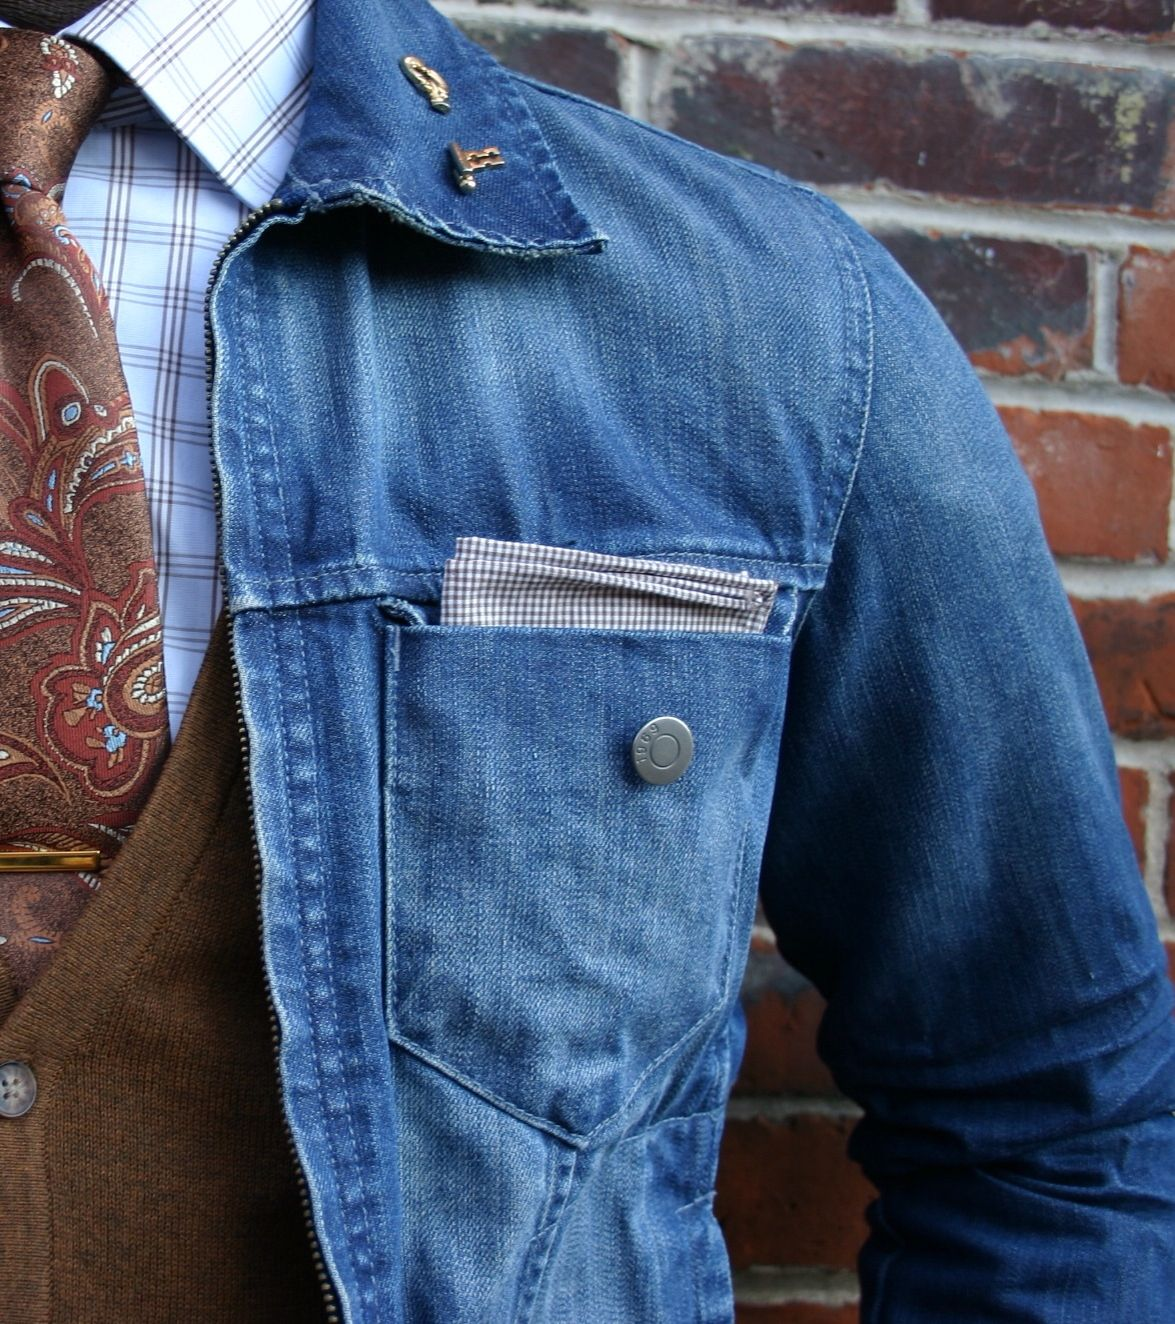 Jean jacket, cardigan, checked shirt, tie and pocket square